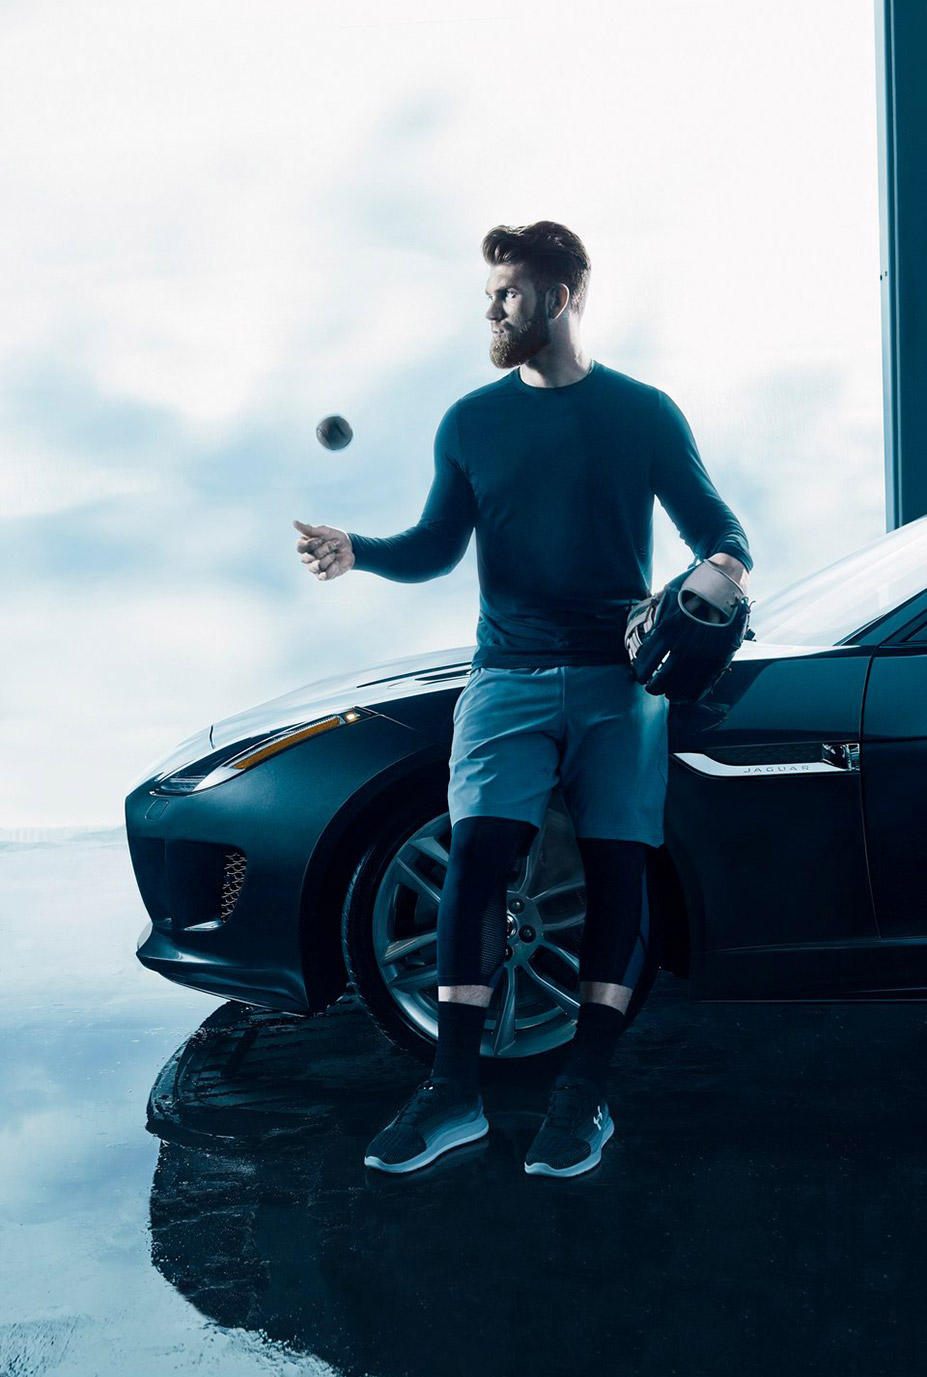 Брайс Харпер / Bryce Harper by Kai Regan – Jaguar F-type 2017